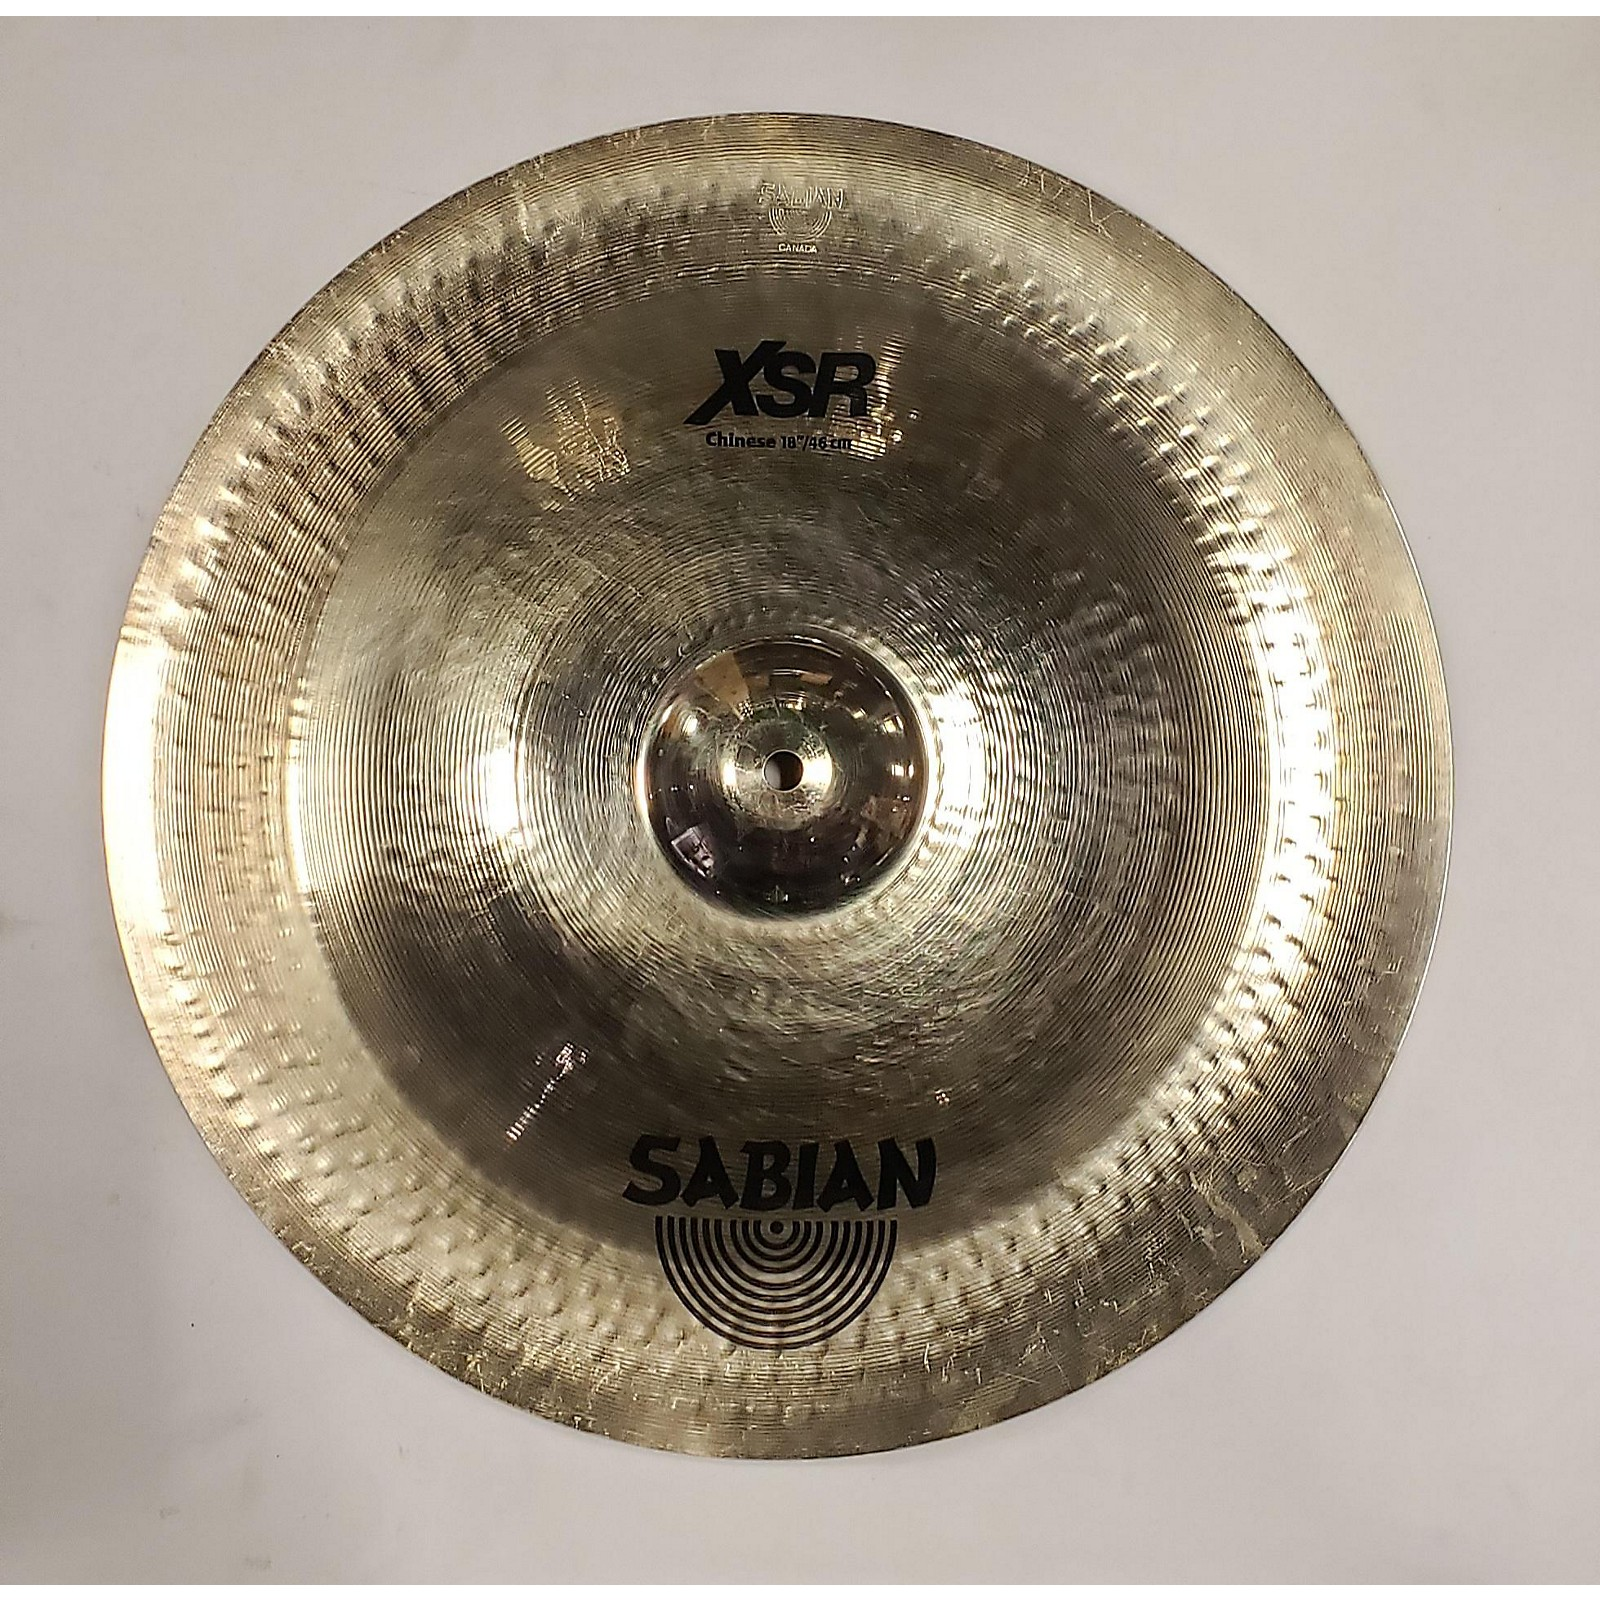 Sabian 18in XSR Chinese 18